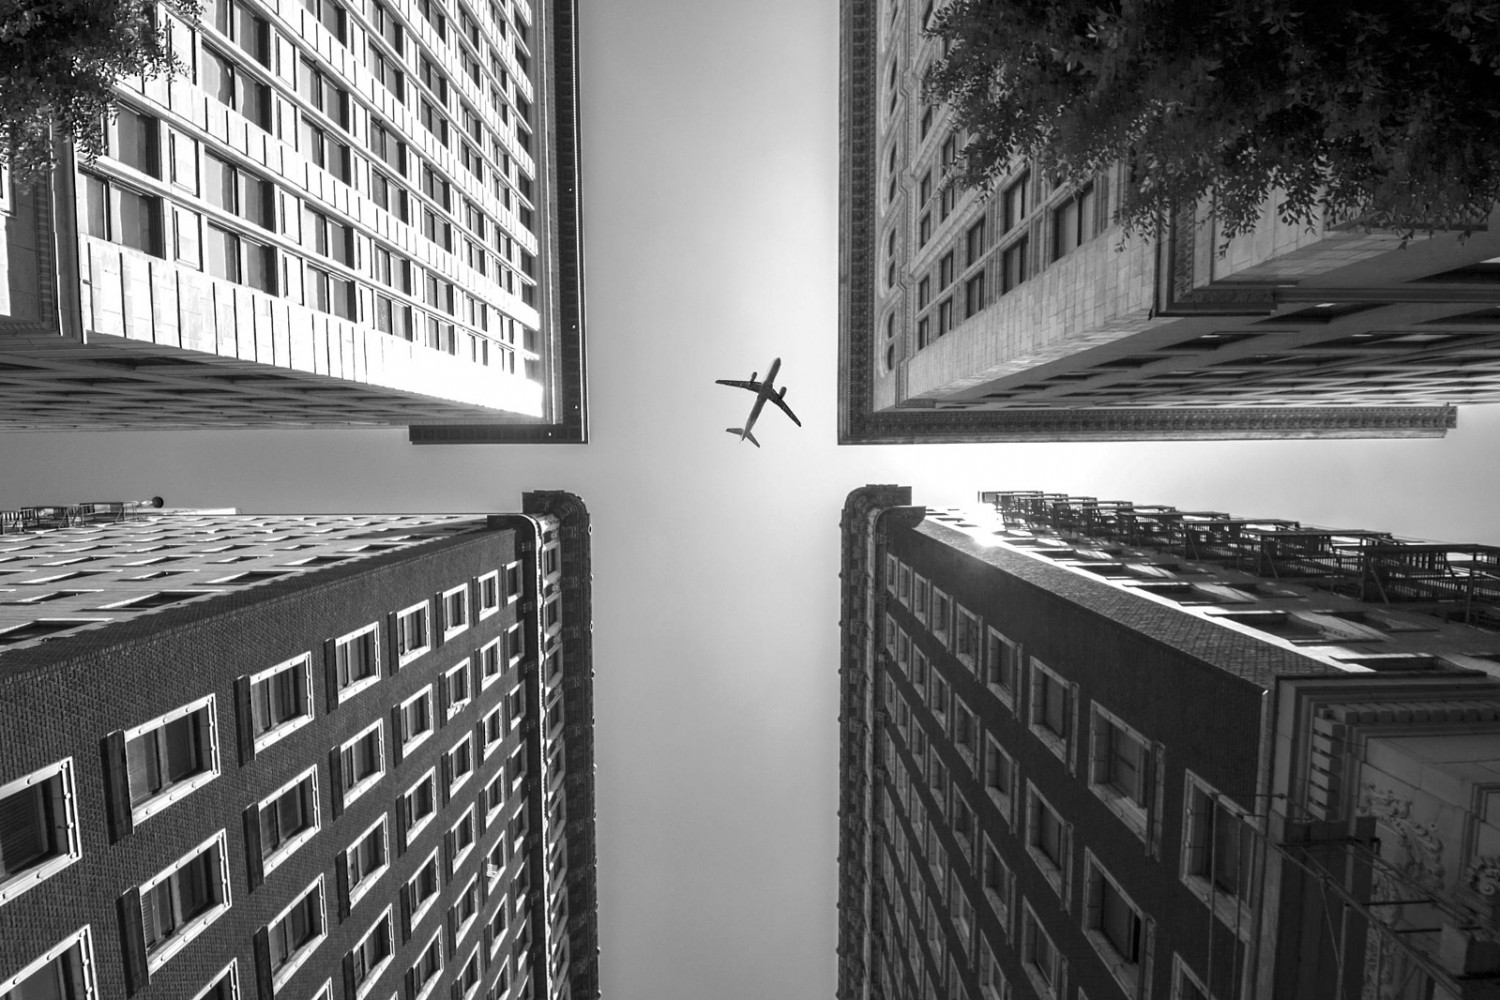 Airplanes and Architecture: A Match Made in Photo Heaven